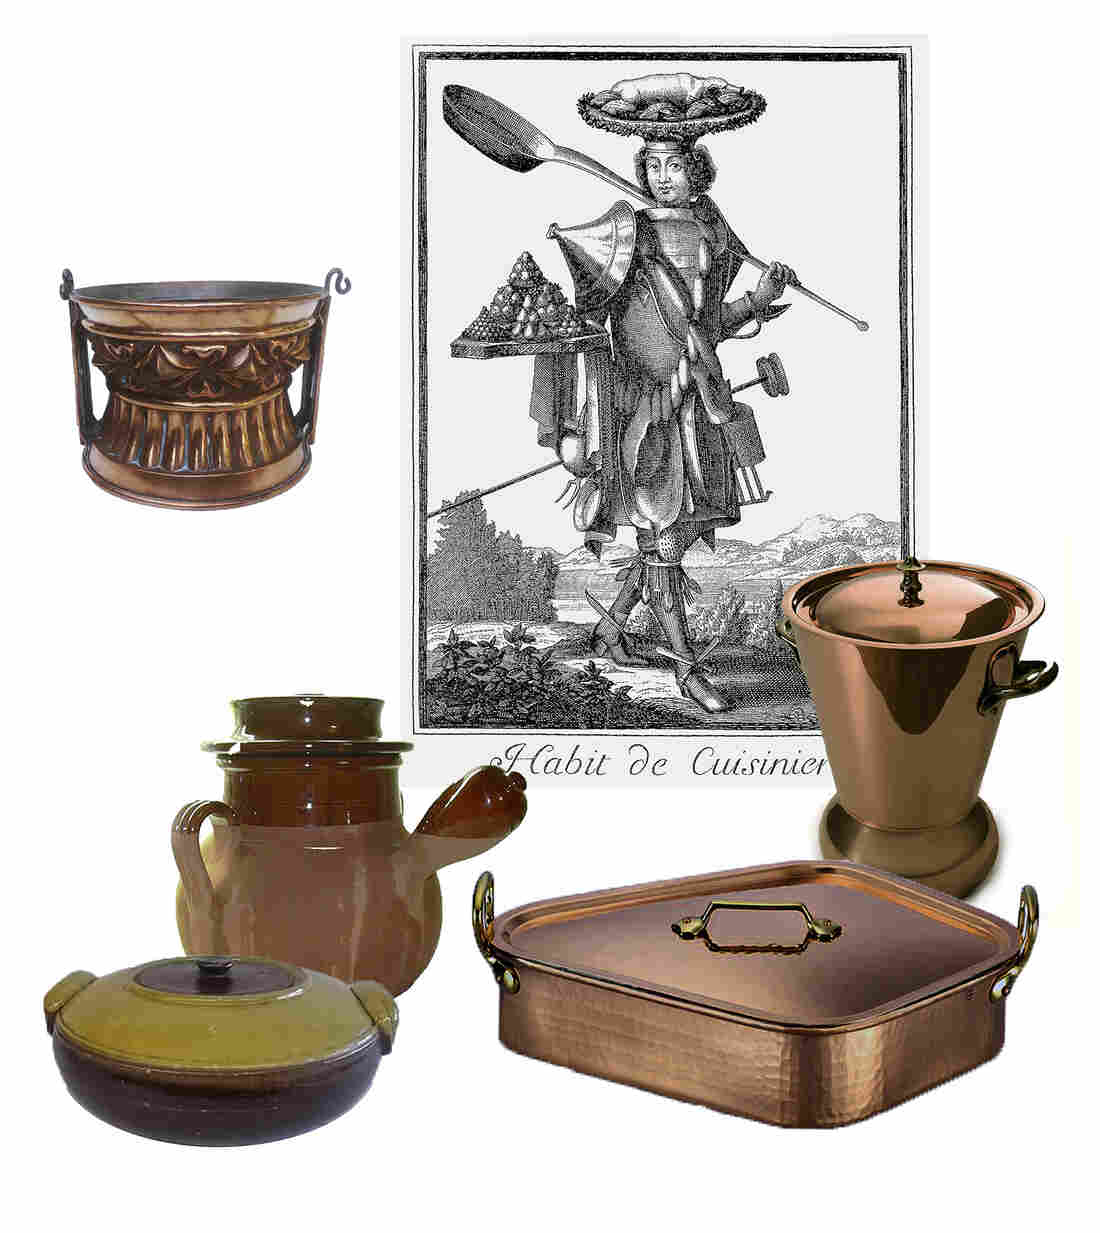 Clockwise from top left: French copper pate mold circa 1870, potato steamer c. 1950, poacher for turbot fish c. 1960, Earthenware tripiere pot c. 1920, terracotta toupin for simmering stews and soups from c. 1940.